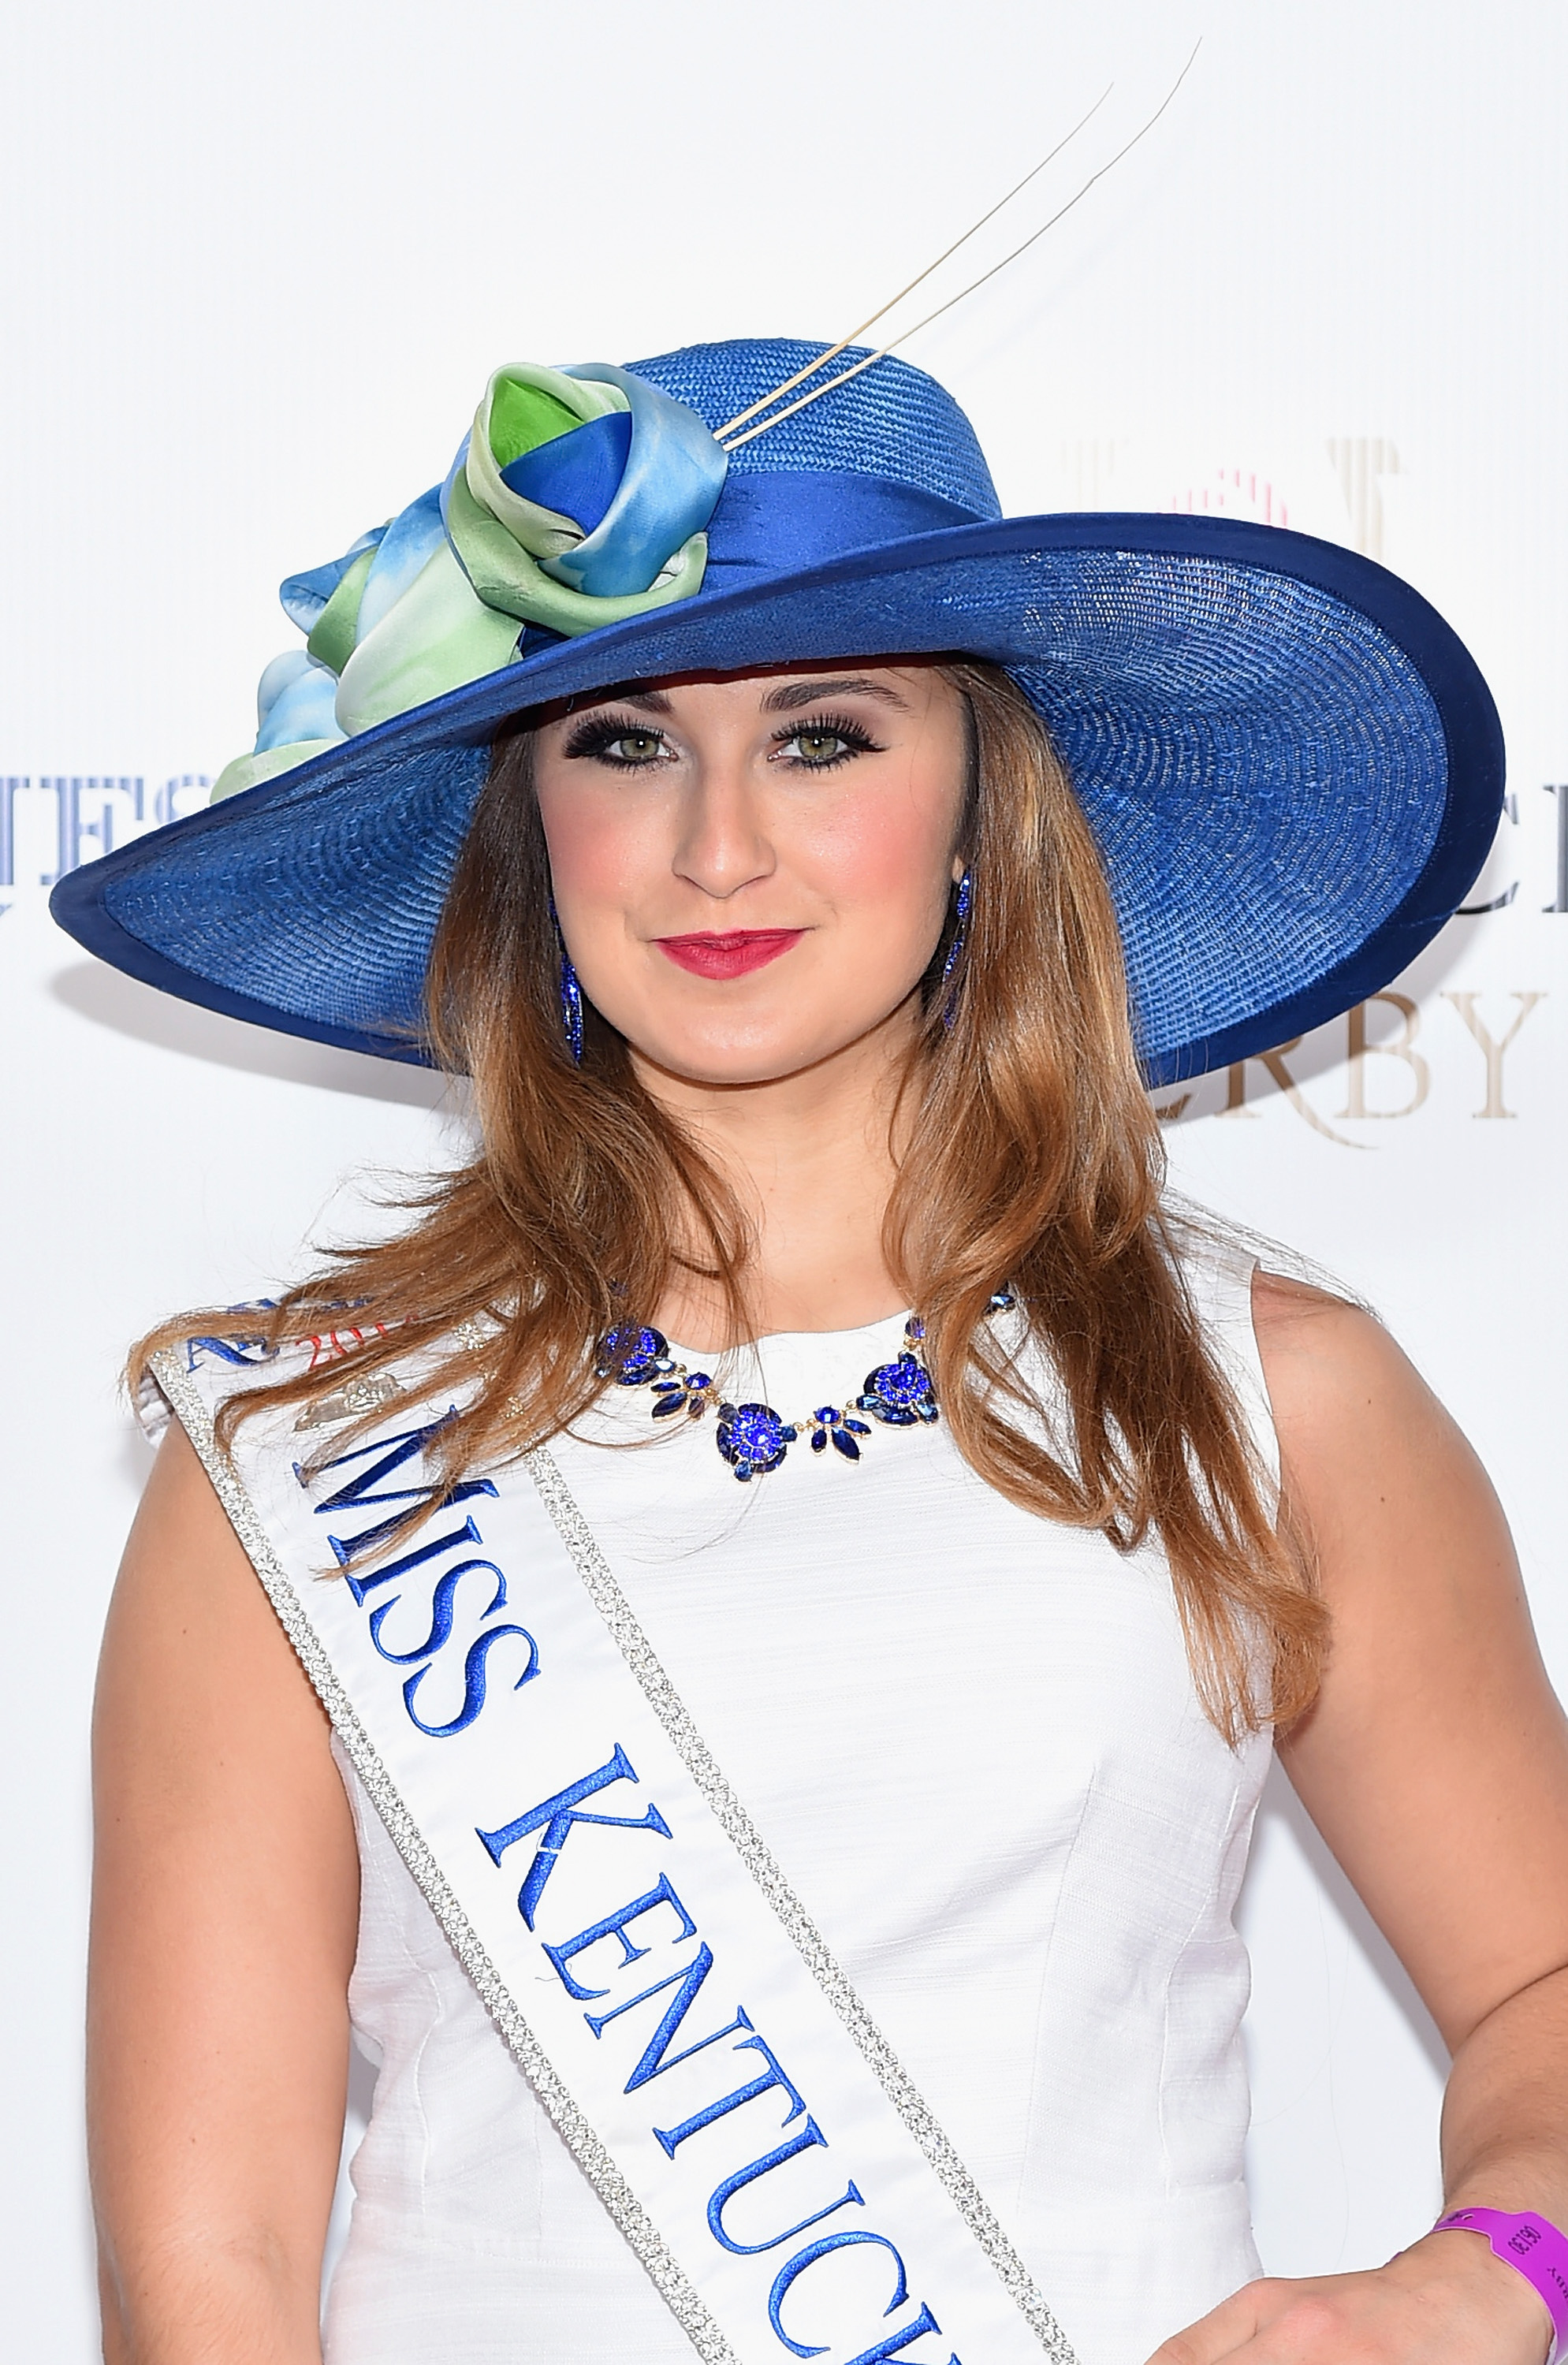 Former Miss Kentucky accused of sending nude photos to 15